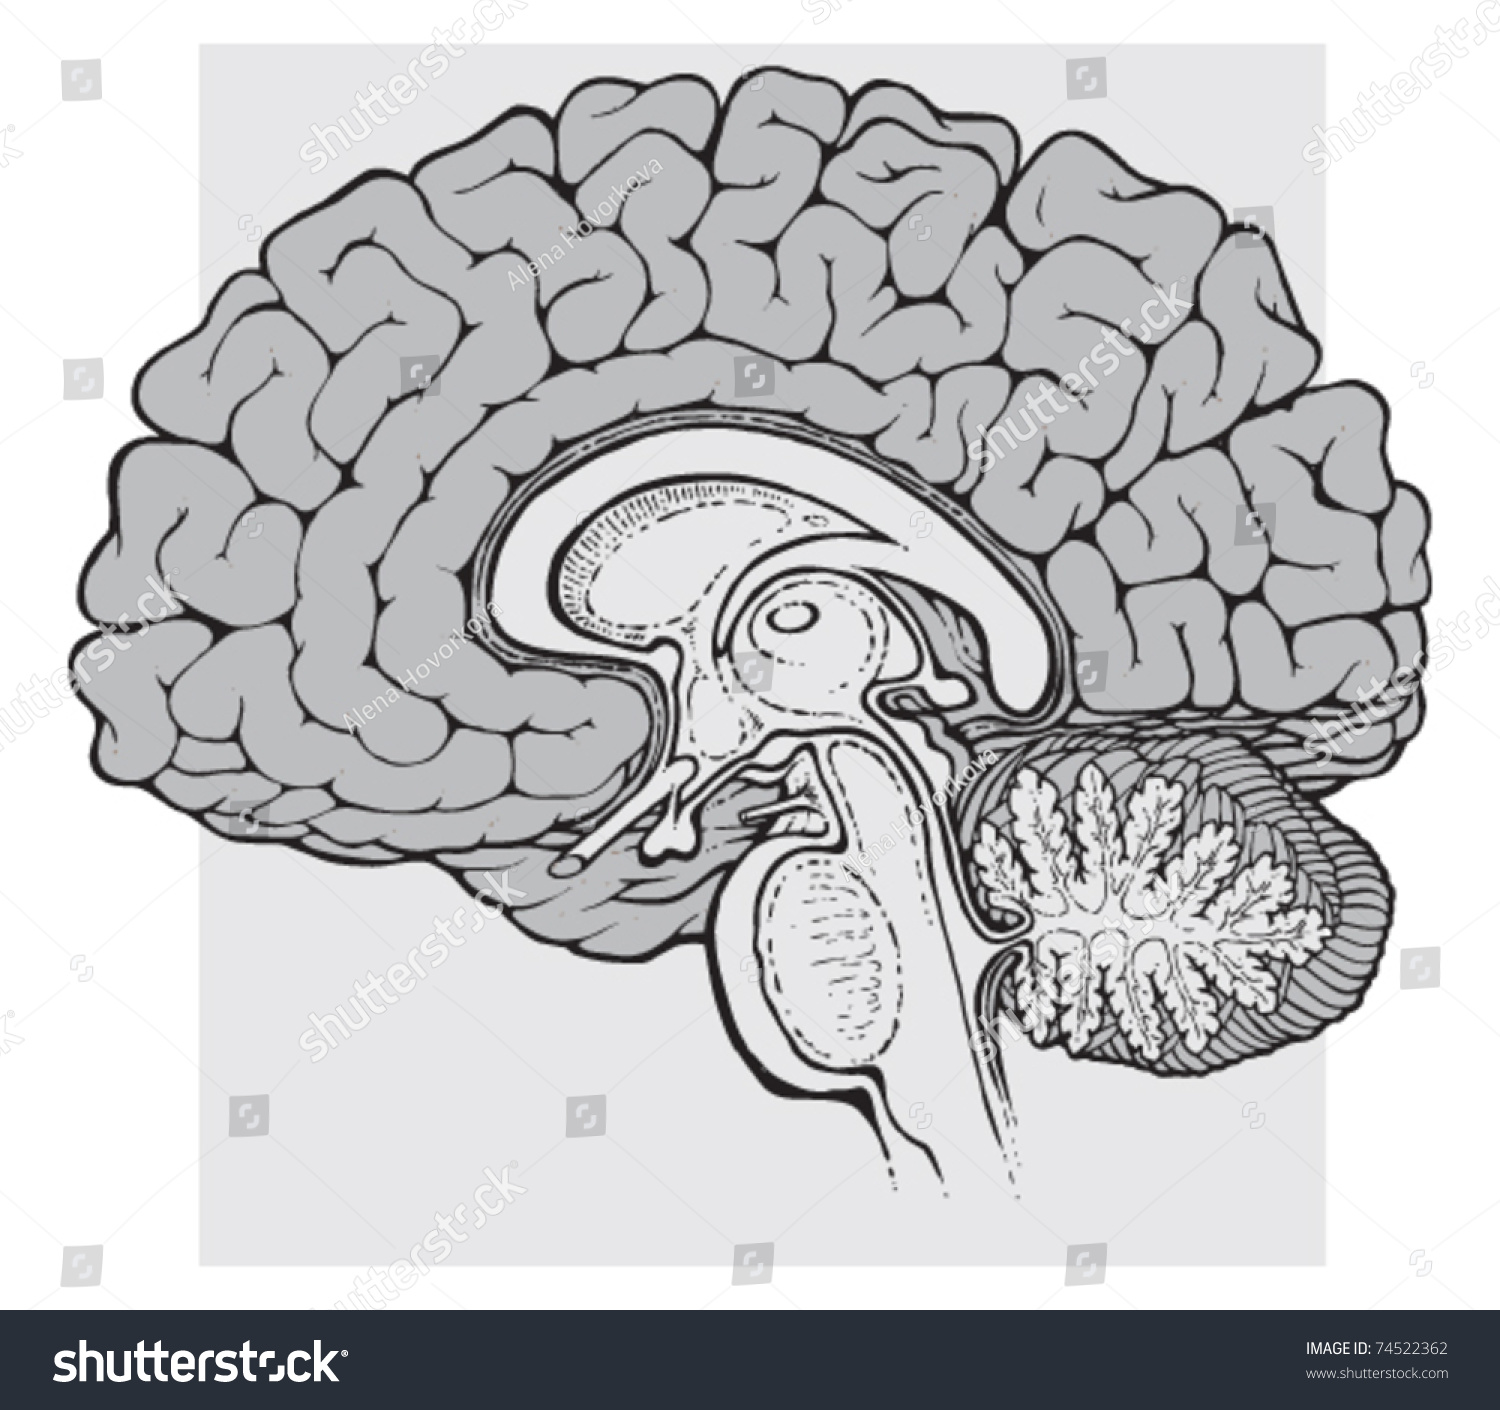 human brain diagram sagittal 2000 bmw 328i engine view medical schematic stock vector